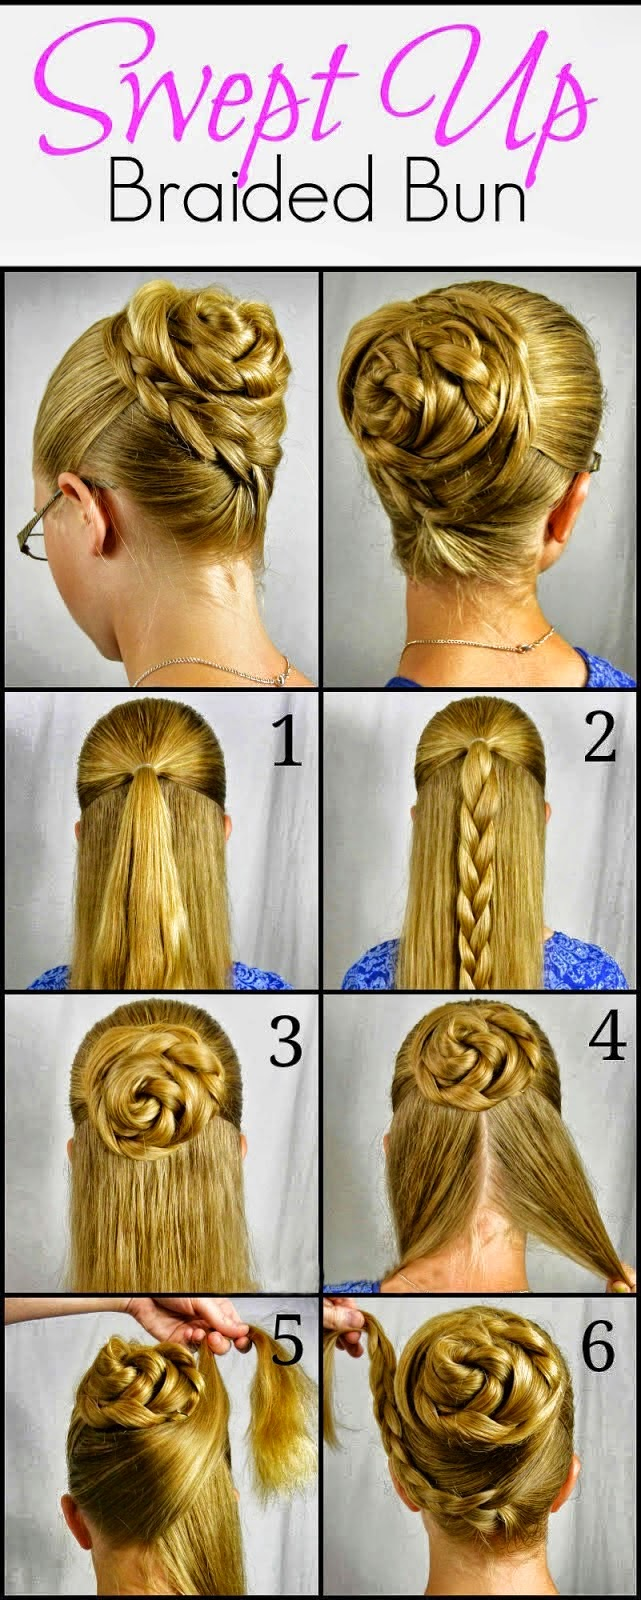 swept up rose braid bun hairstyle step by step - beauty and